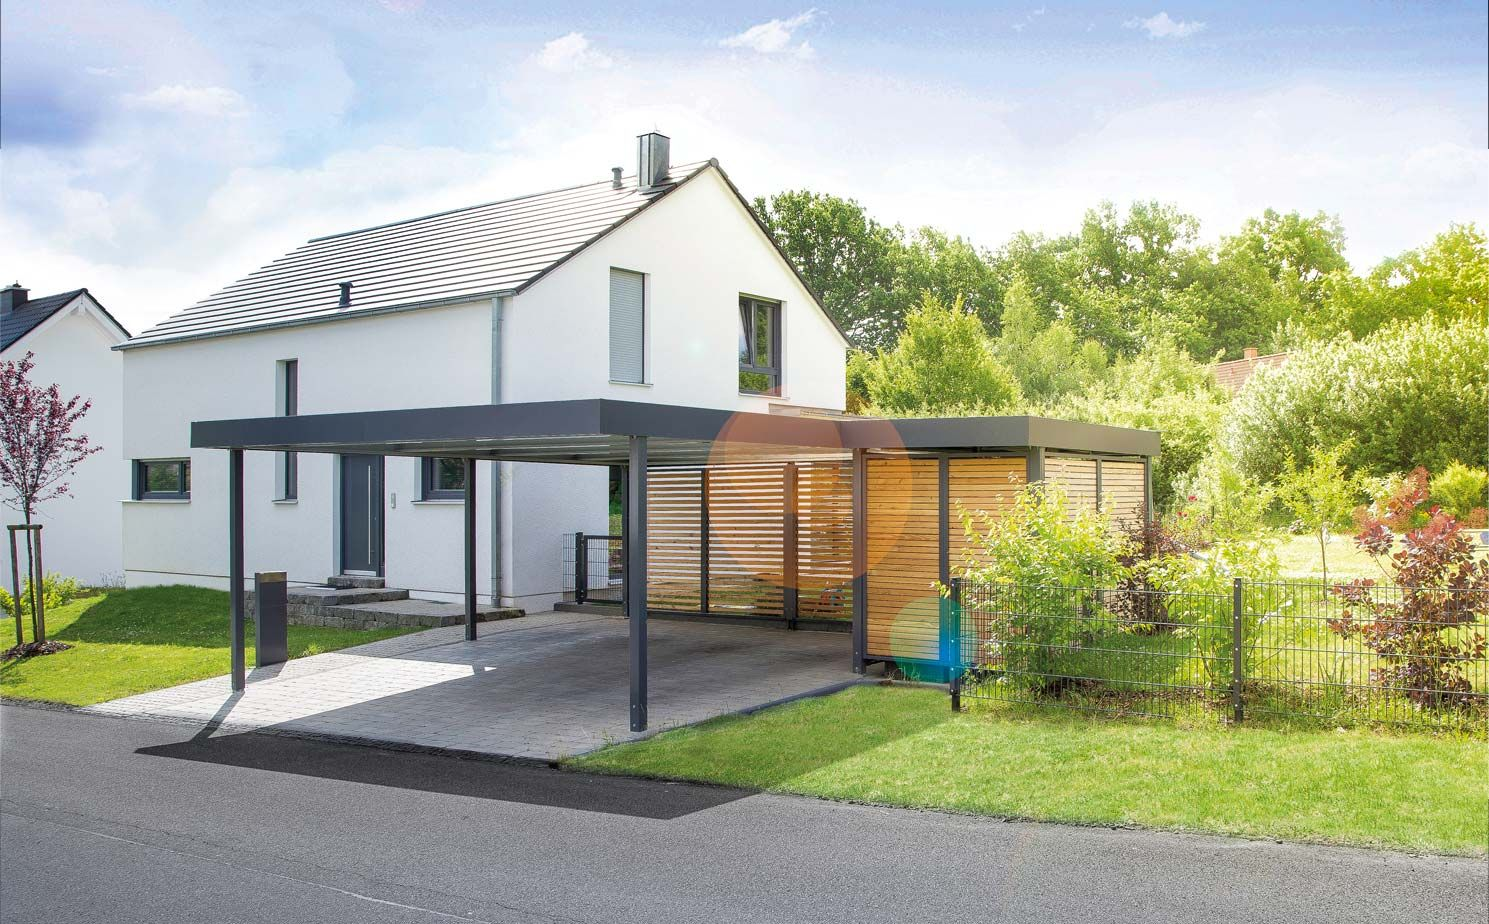 carport mit ger tehaus von siebau carport einhausungen eingangs berdachung m lltonnenbox. Black Bedroom Furniture Sets. Home Design Ideas